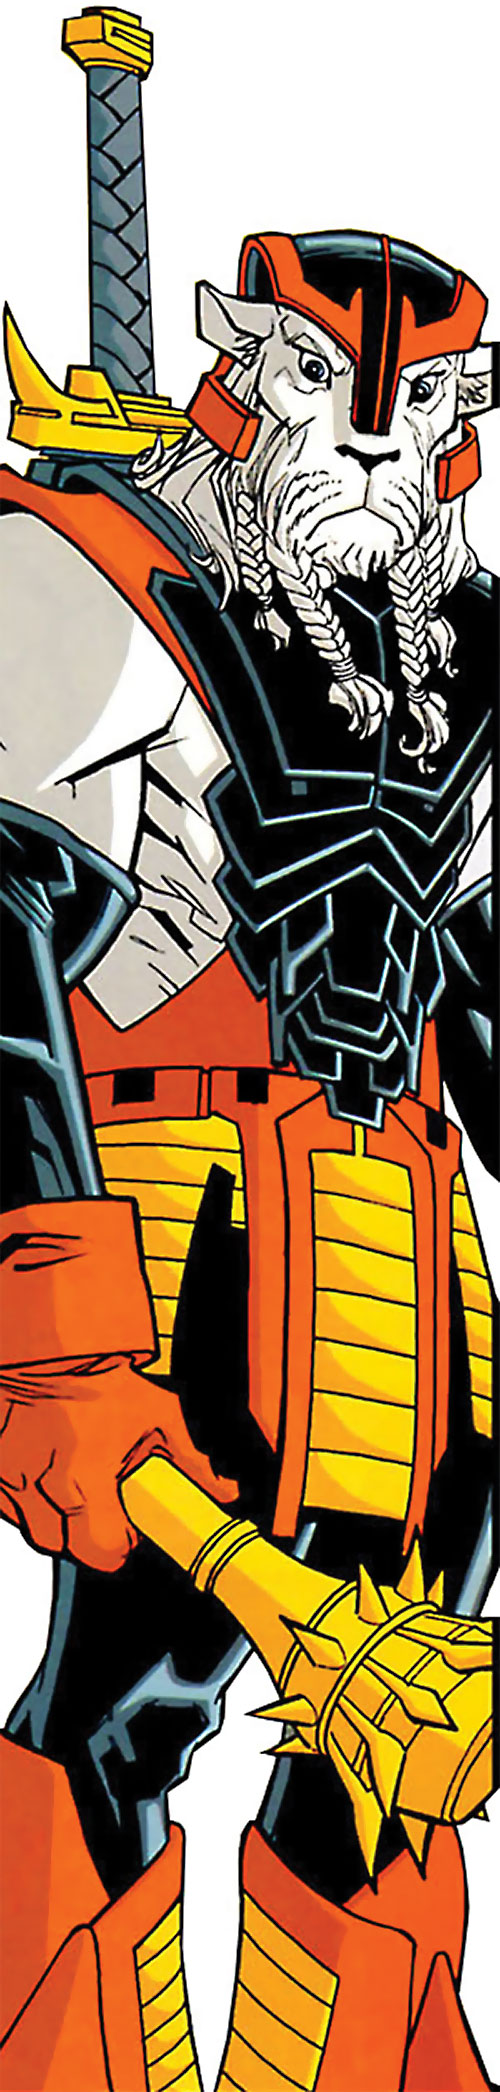 Battle Beast (Invincible Comics) with helmet and mace